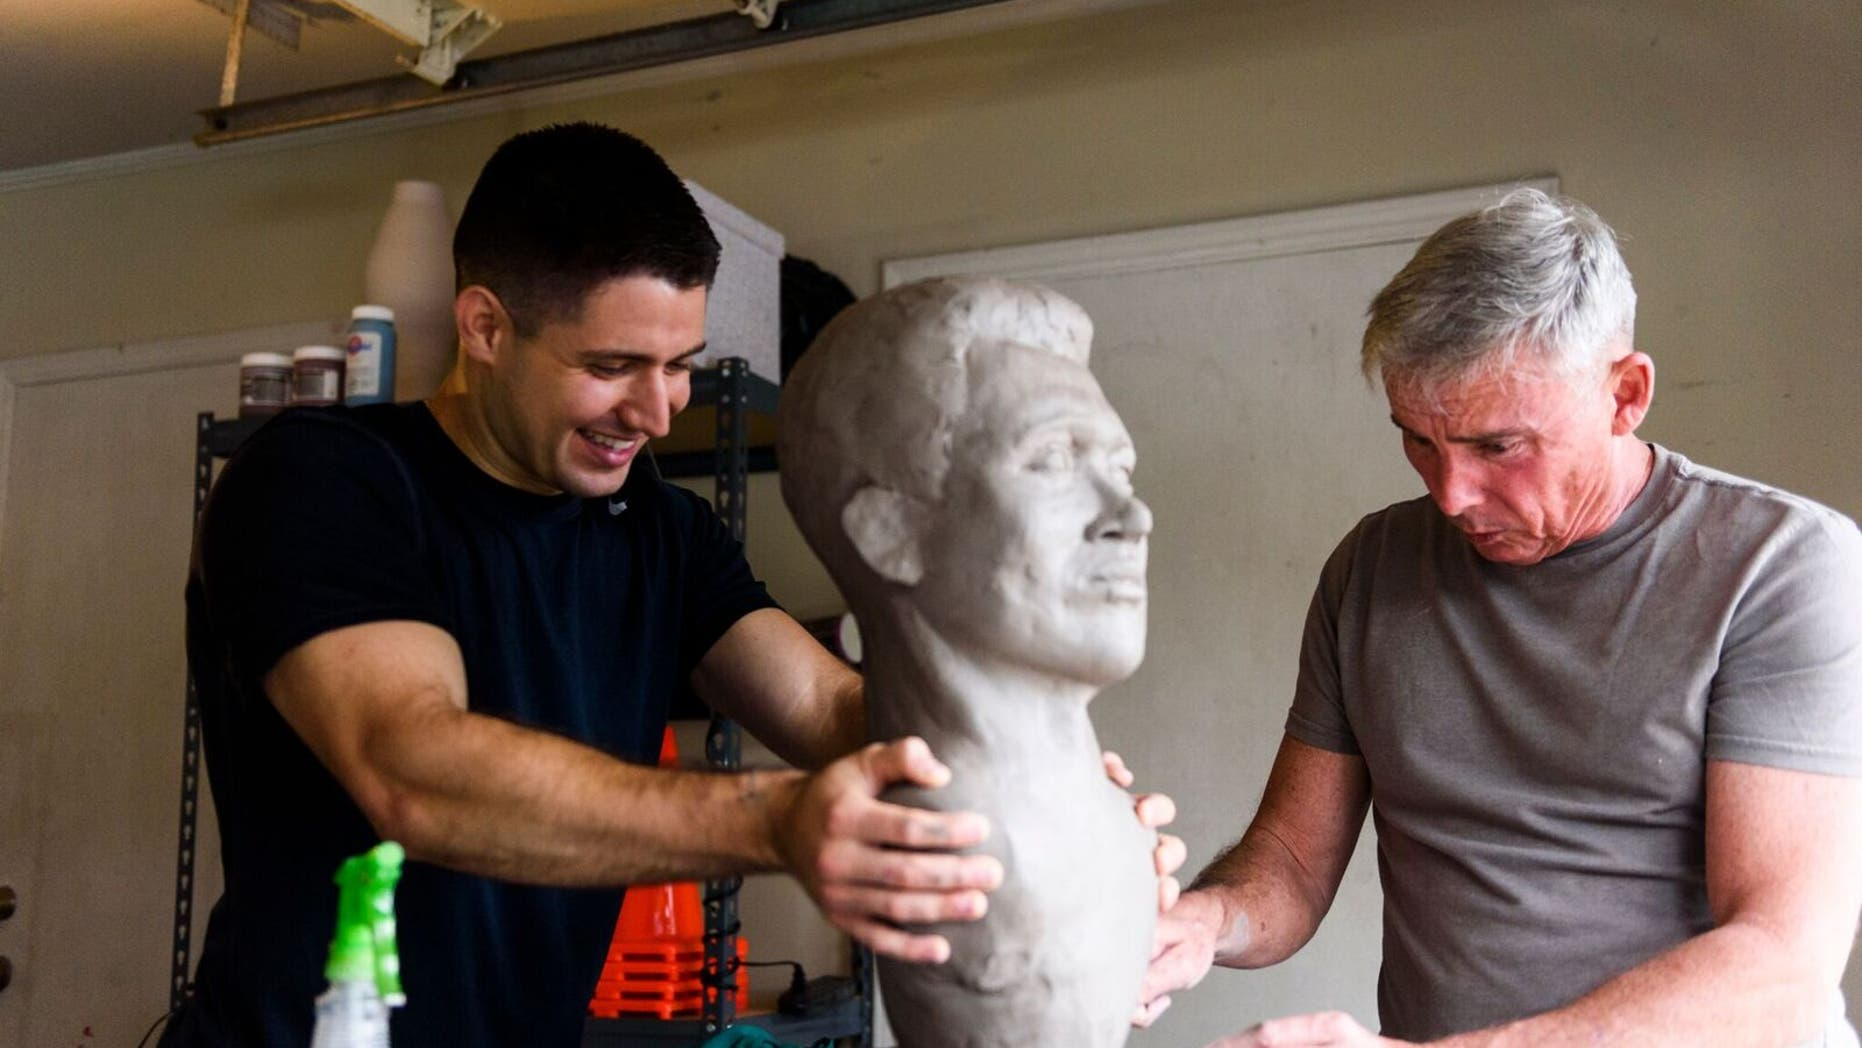 Lt. Steven Arango (left) with Alabama sculptor Lee Busby (right).